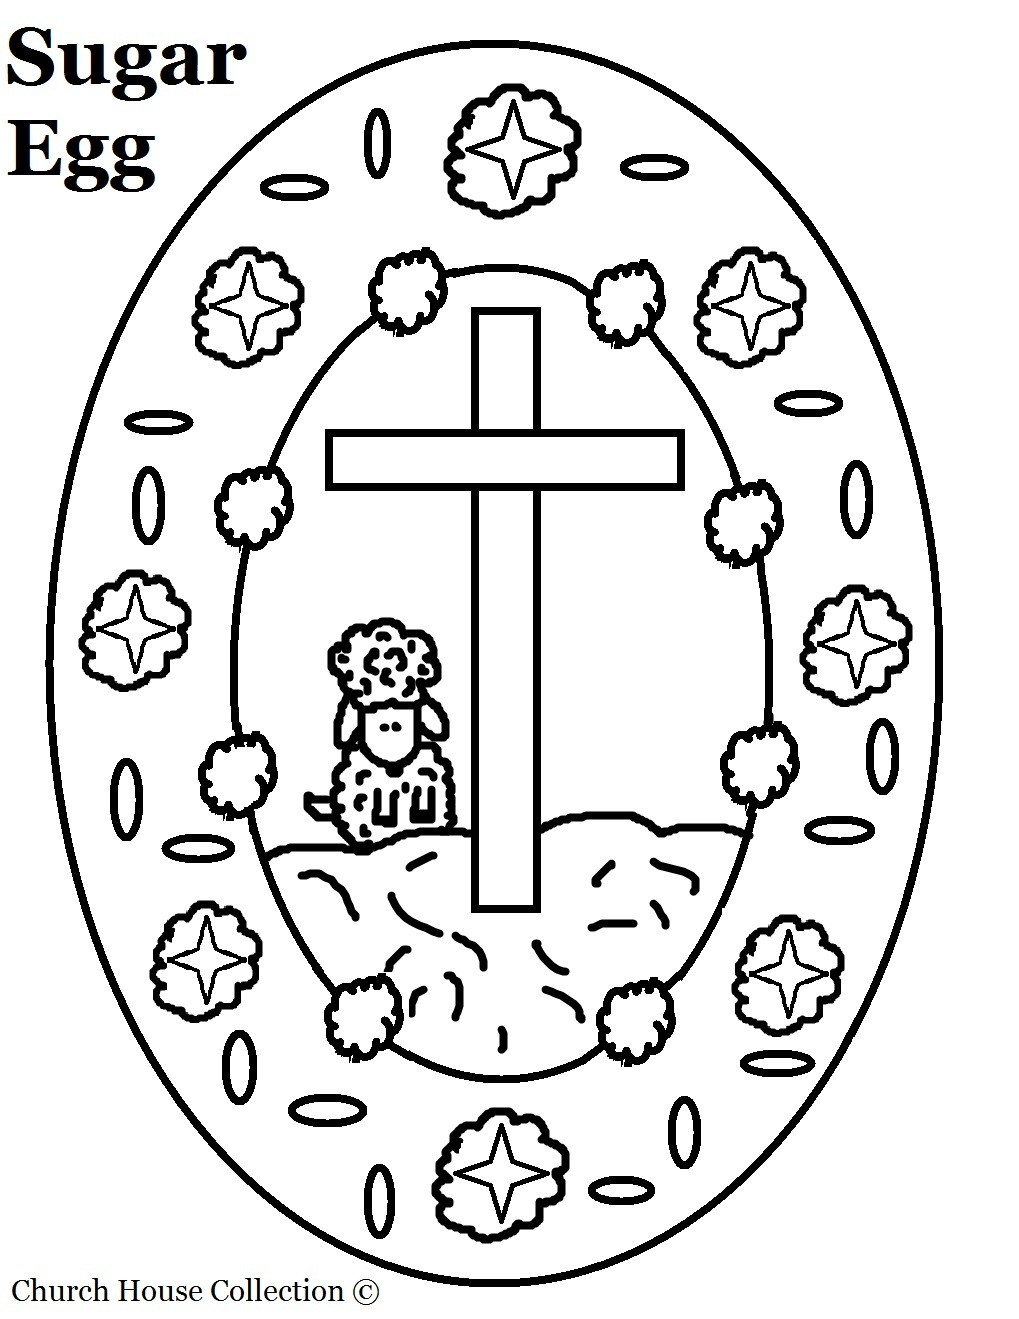 Church House Collection Blog: Sugar Egg With Cross and